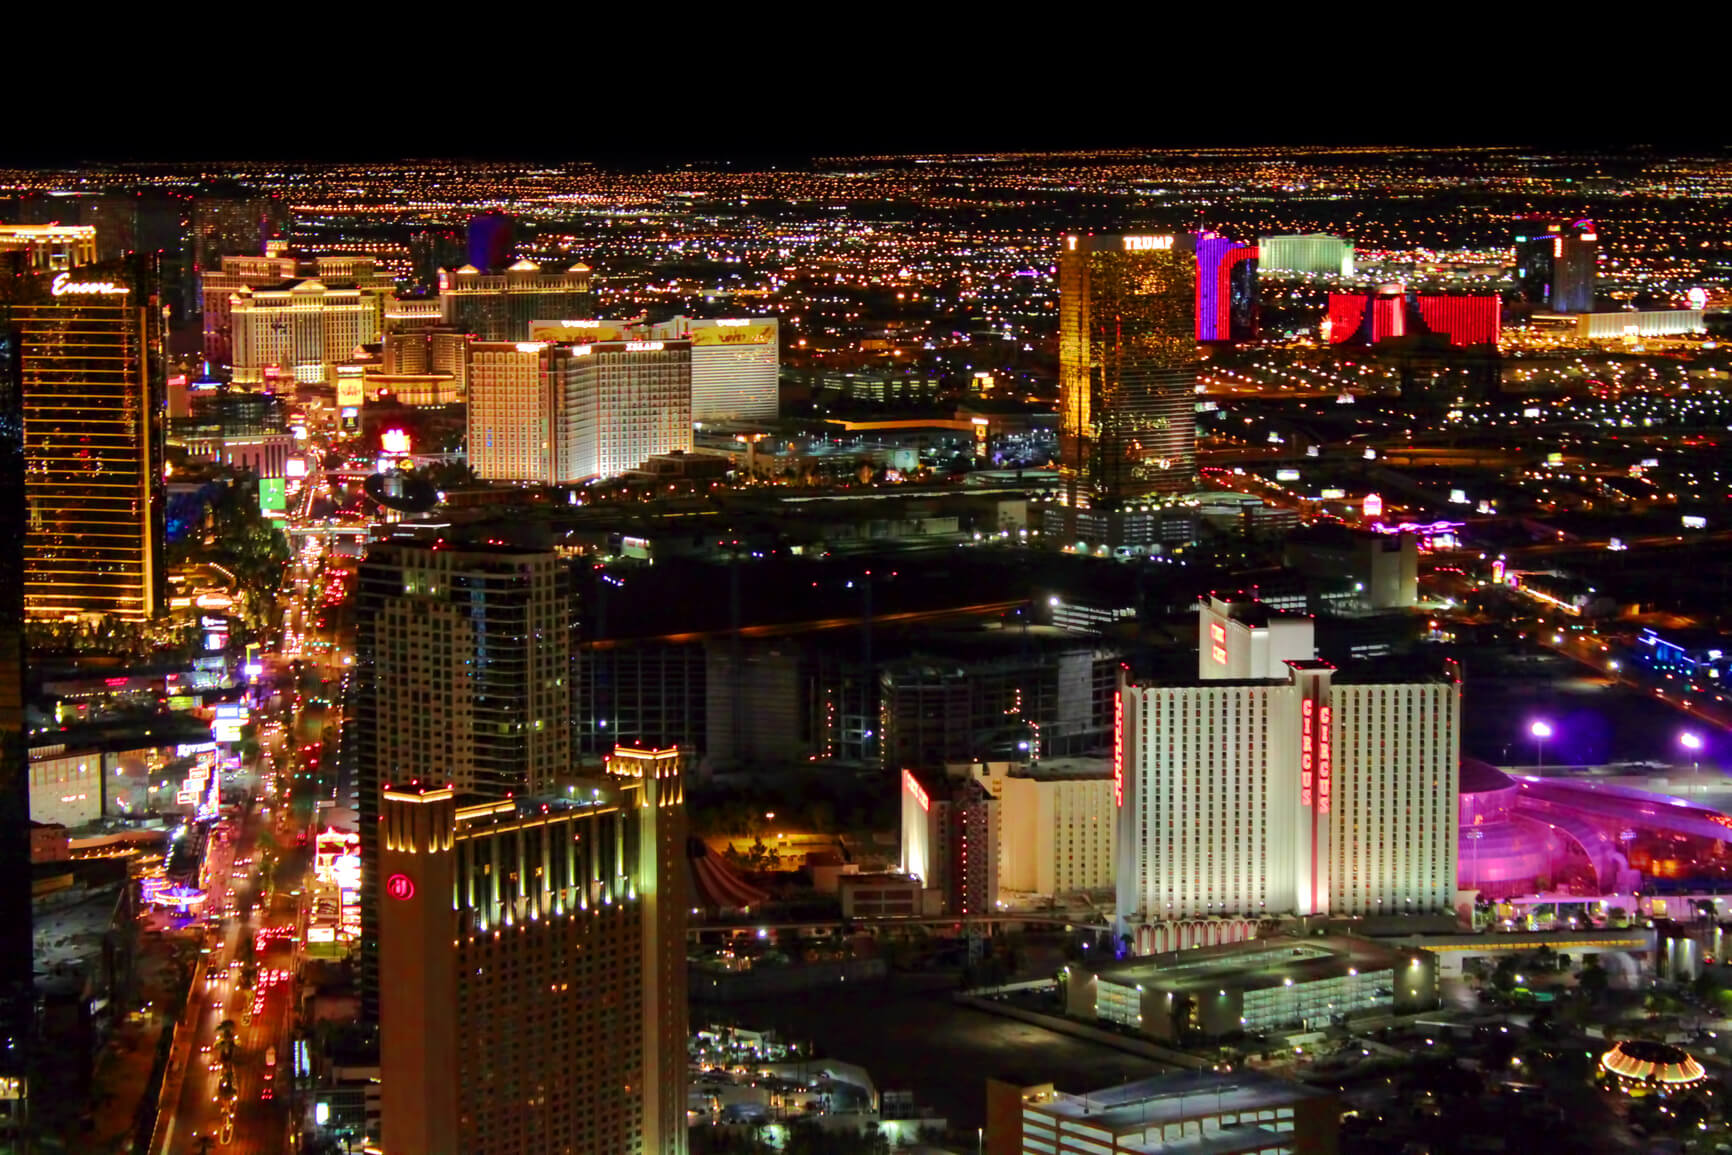 Non-stop from Dallas, Texas to Las Vegas (& vice versa) for only $70 roundtrip (Sep-Oct dates)